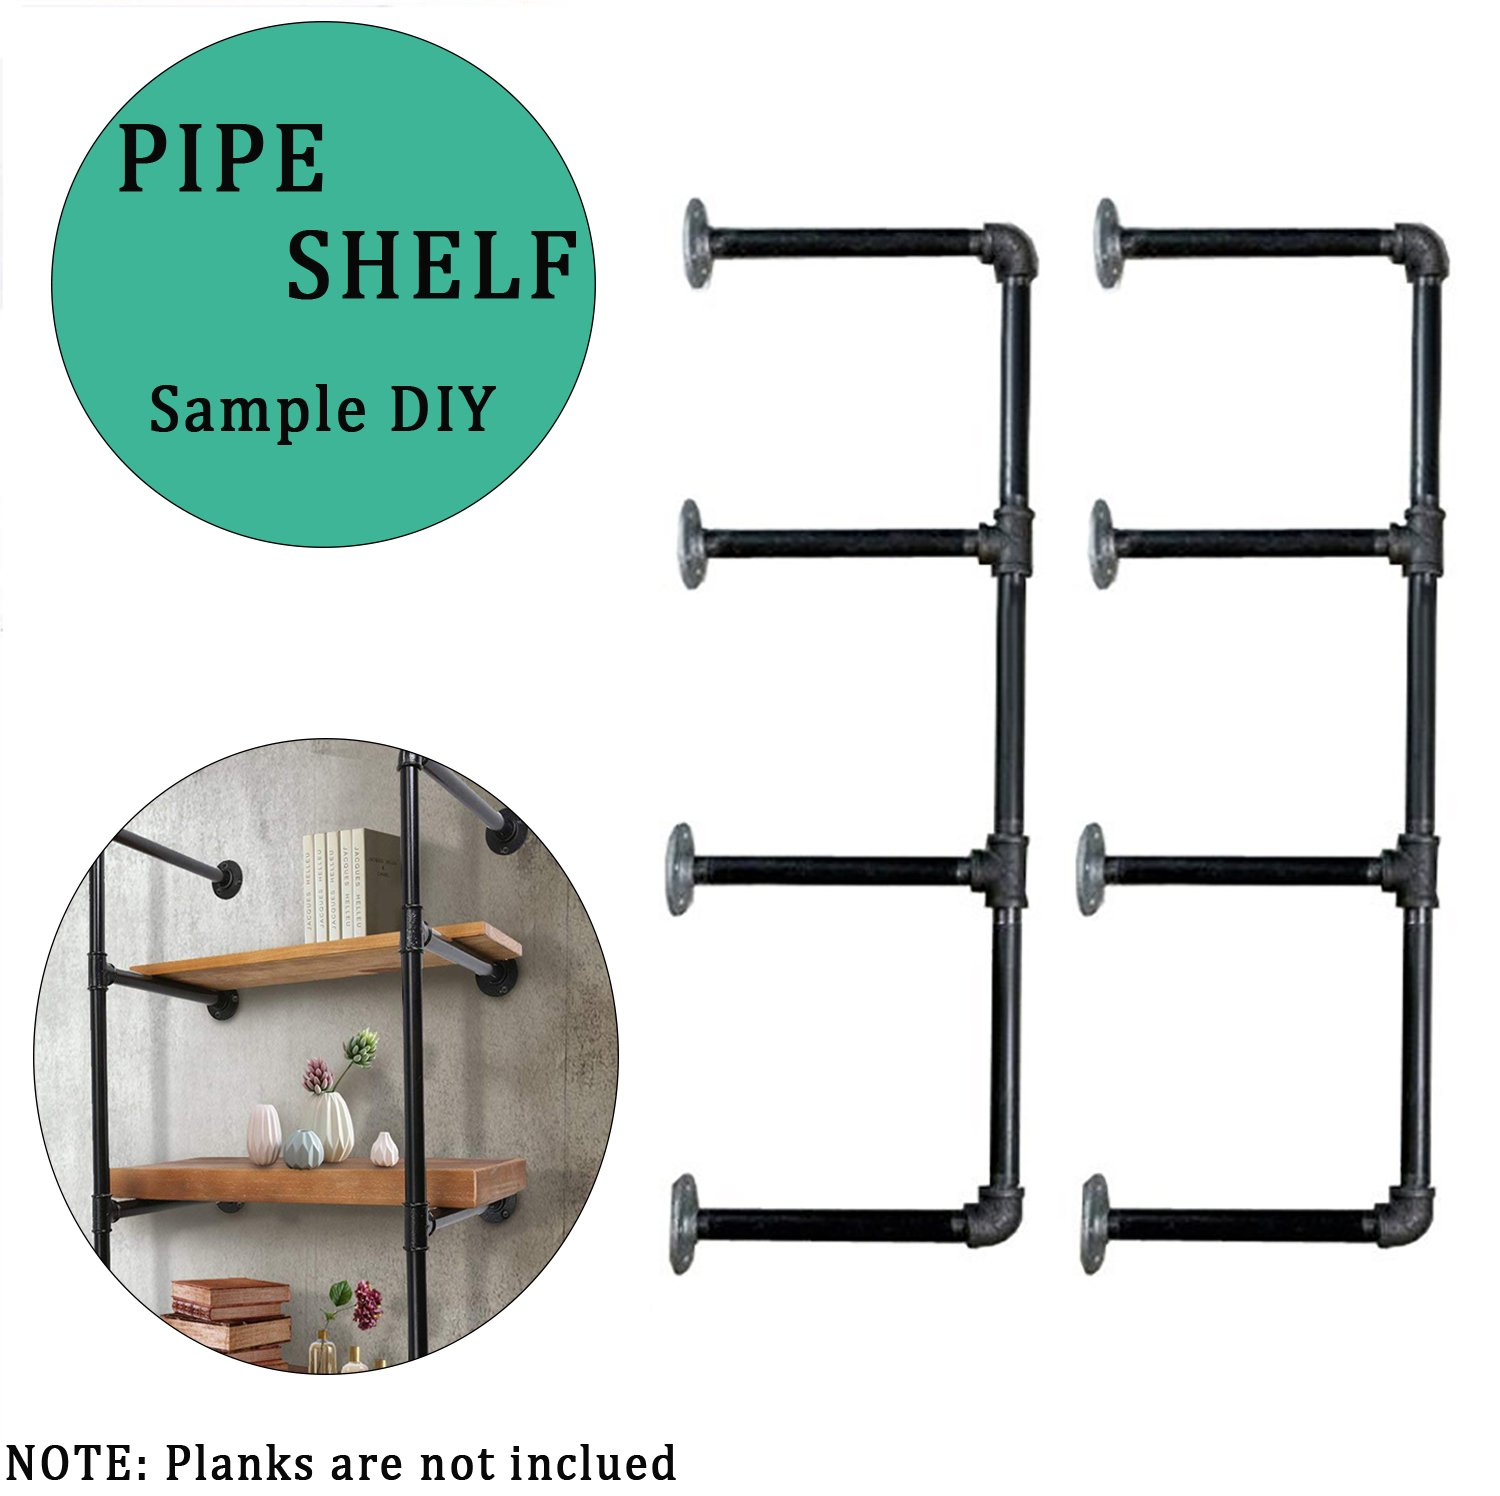 Industrial Retro Wall Mount Iron Pipe Shelf, Brackets DIY Storage Shelving Bookshelf for Home Improvement Kitchen Office Living Room (2pcs)